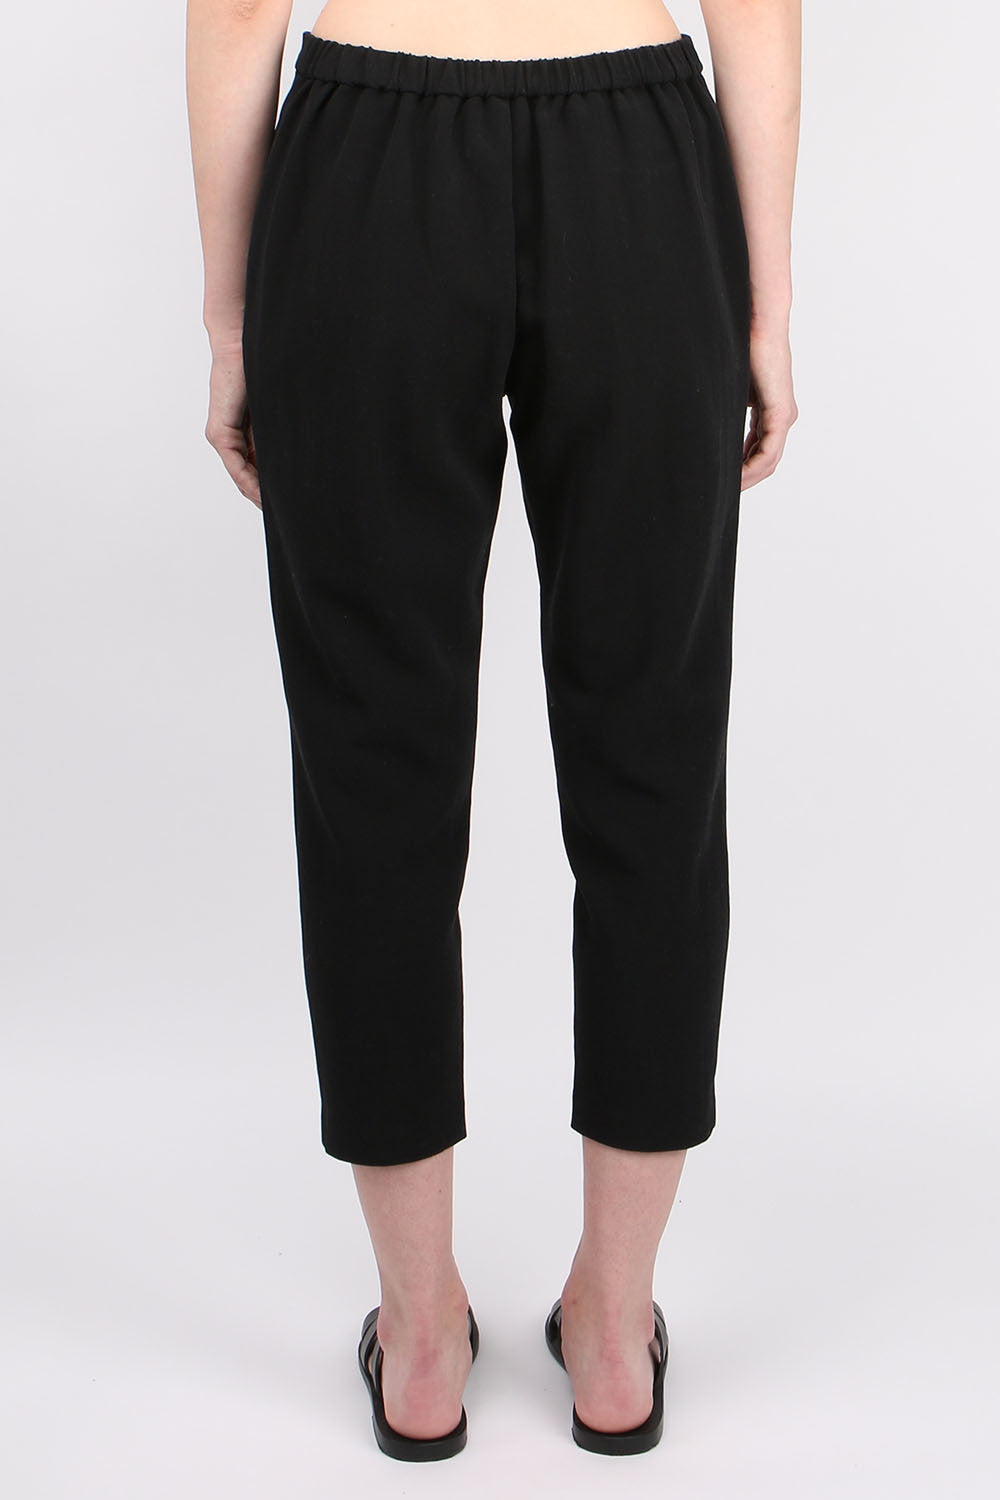 Evam Eva Double Cloth Easy Tuck Pant Black